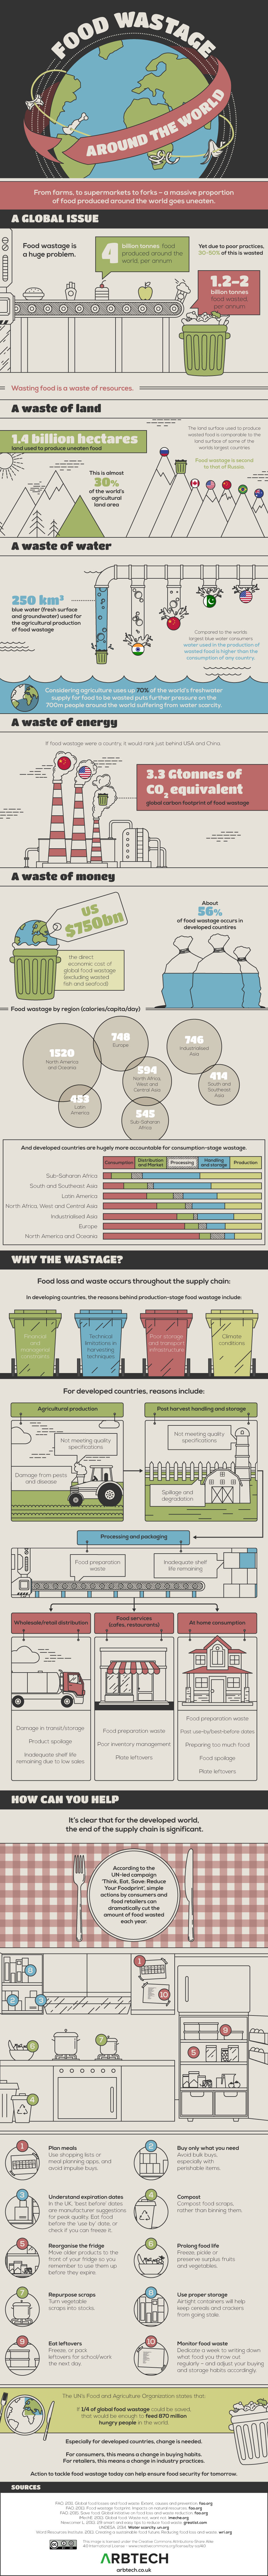 Food Waste Around the World, an infographic from Arbtech.